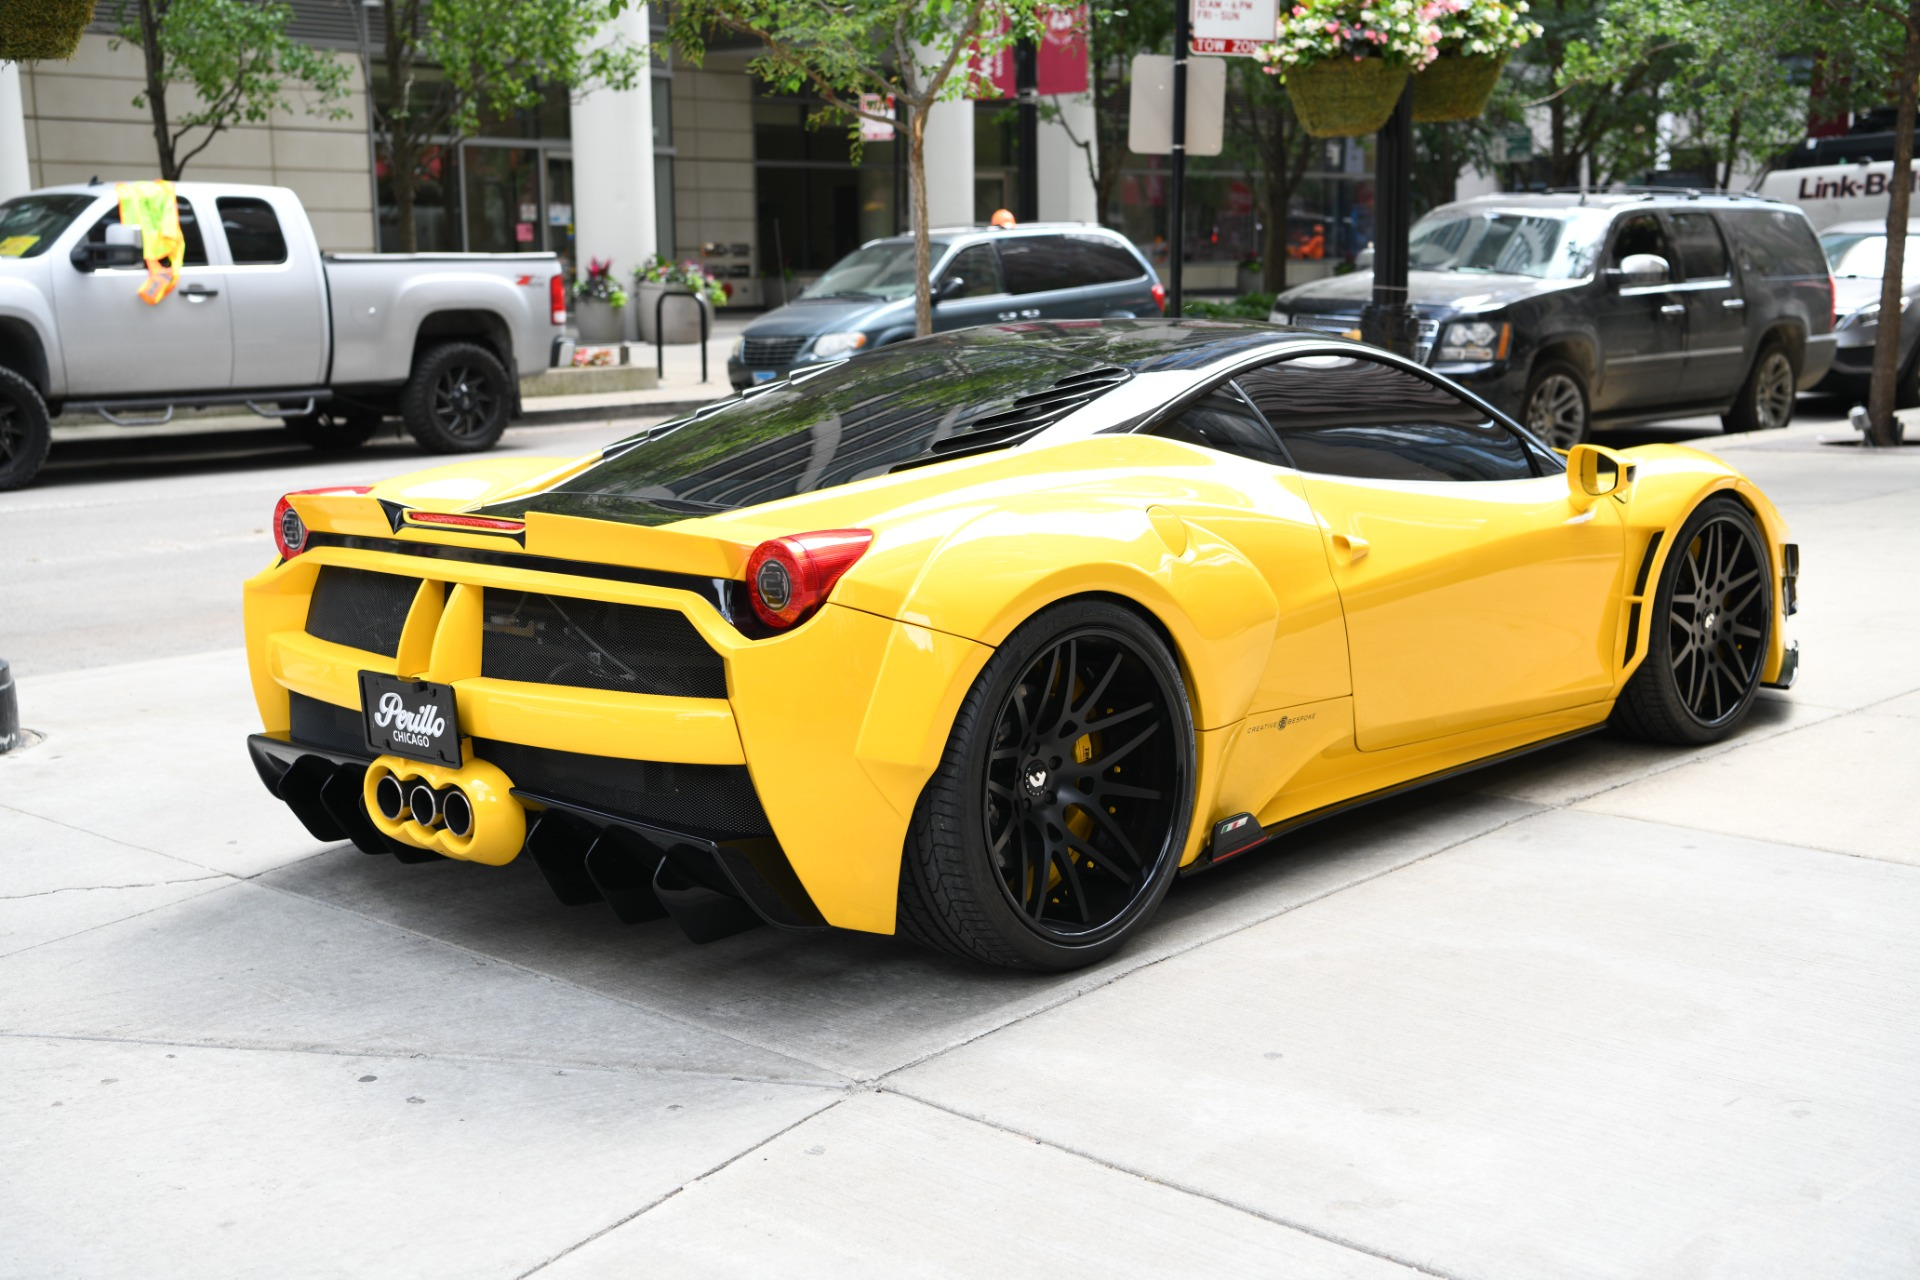 2013 ferrari 458 italia stock b626a s for sale near chicago il il ferrari dealer. Black Bedroom Furniture Sets. Home Design Ideas